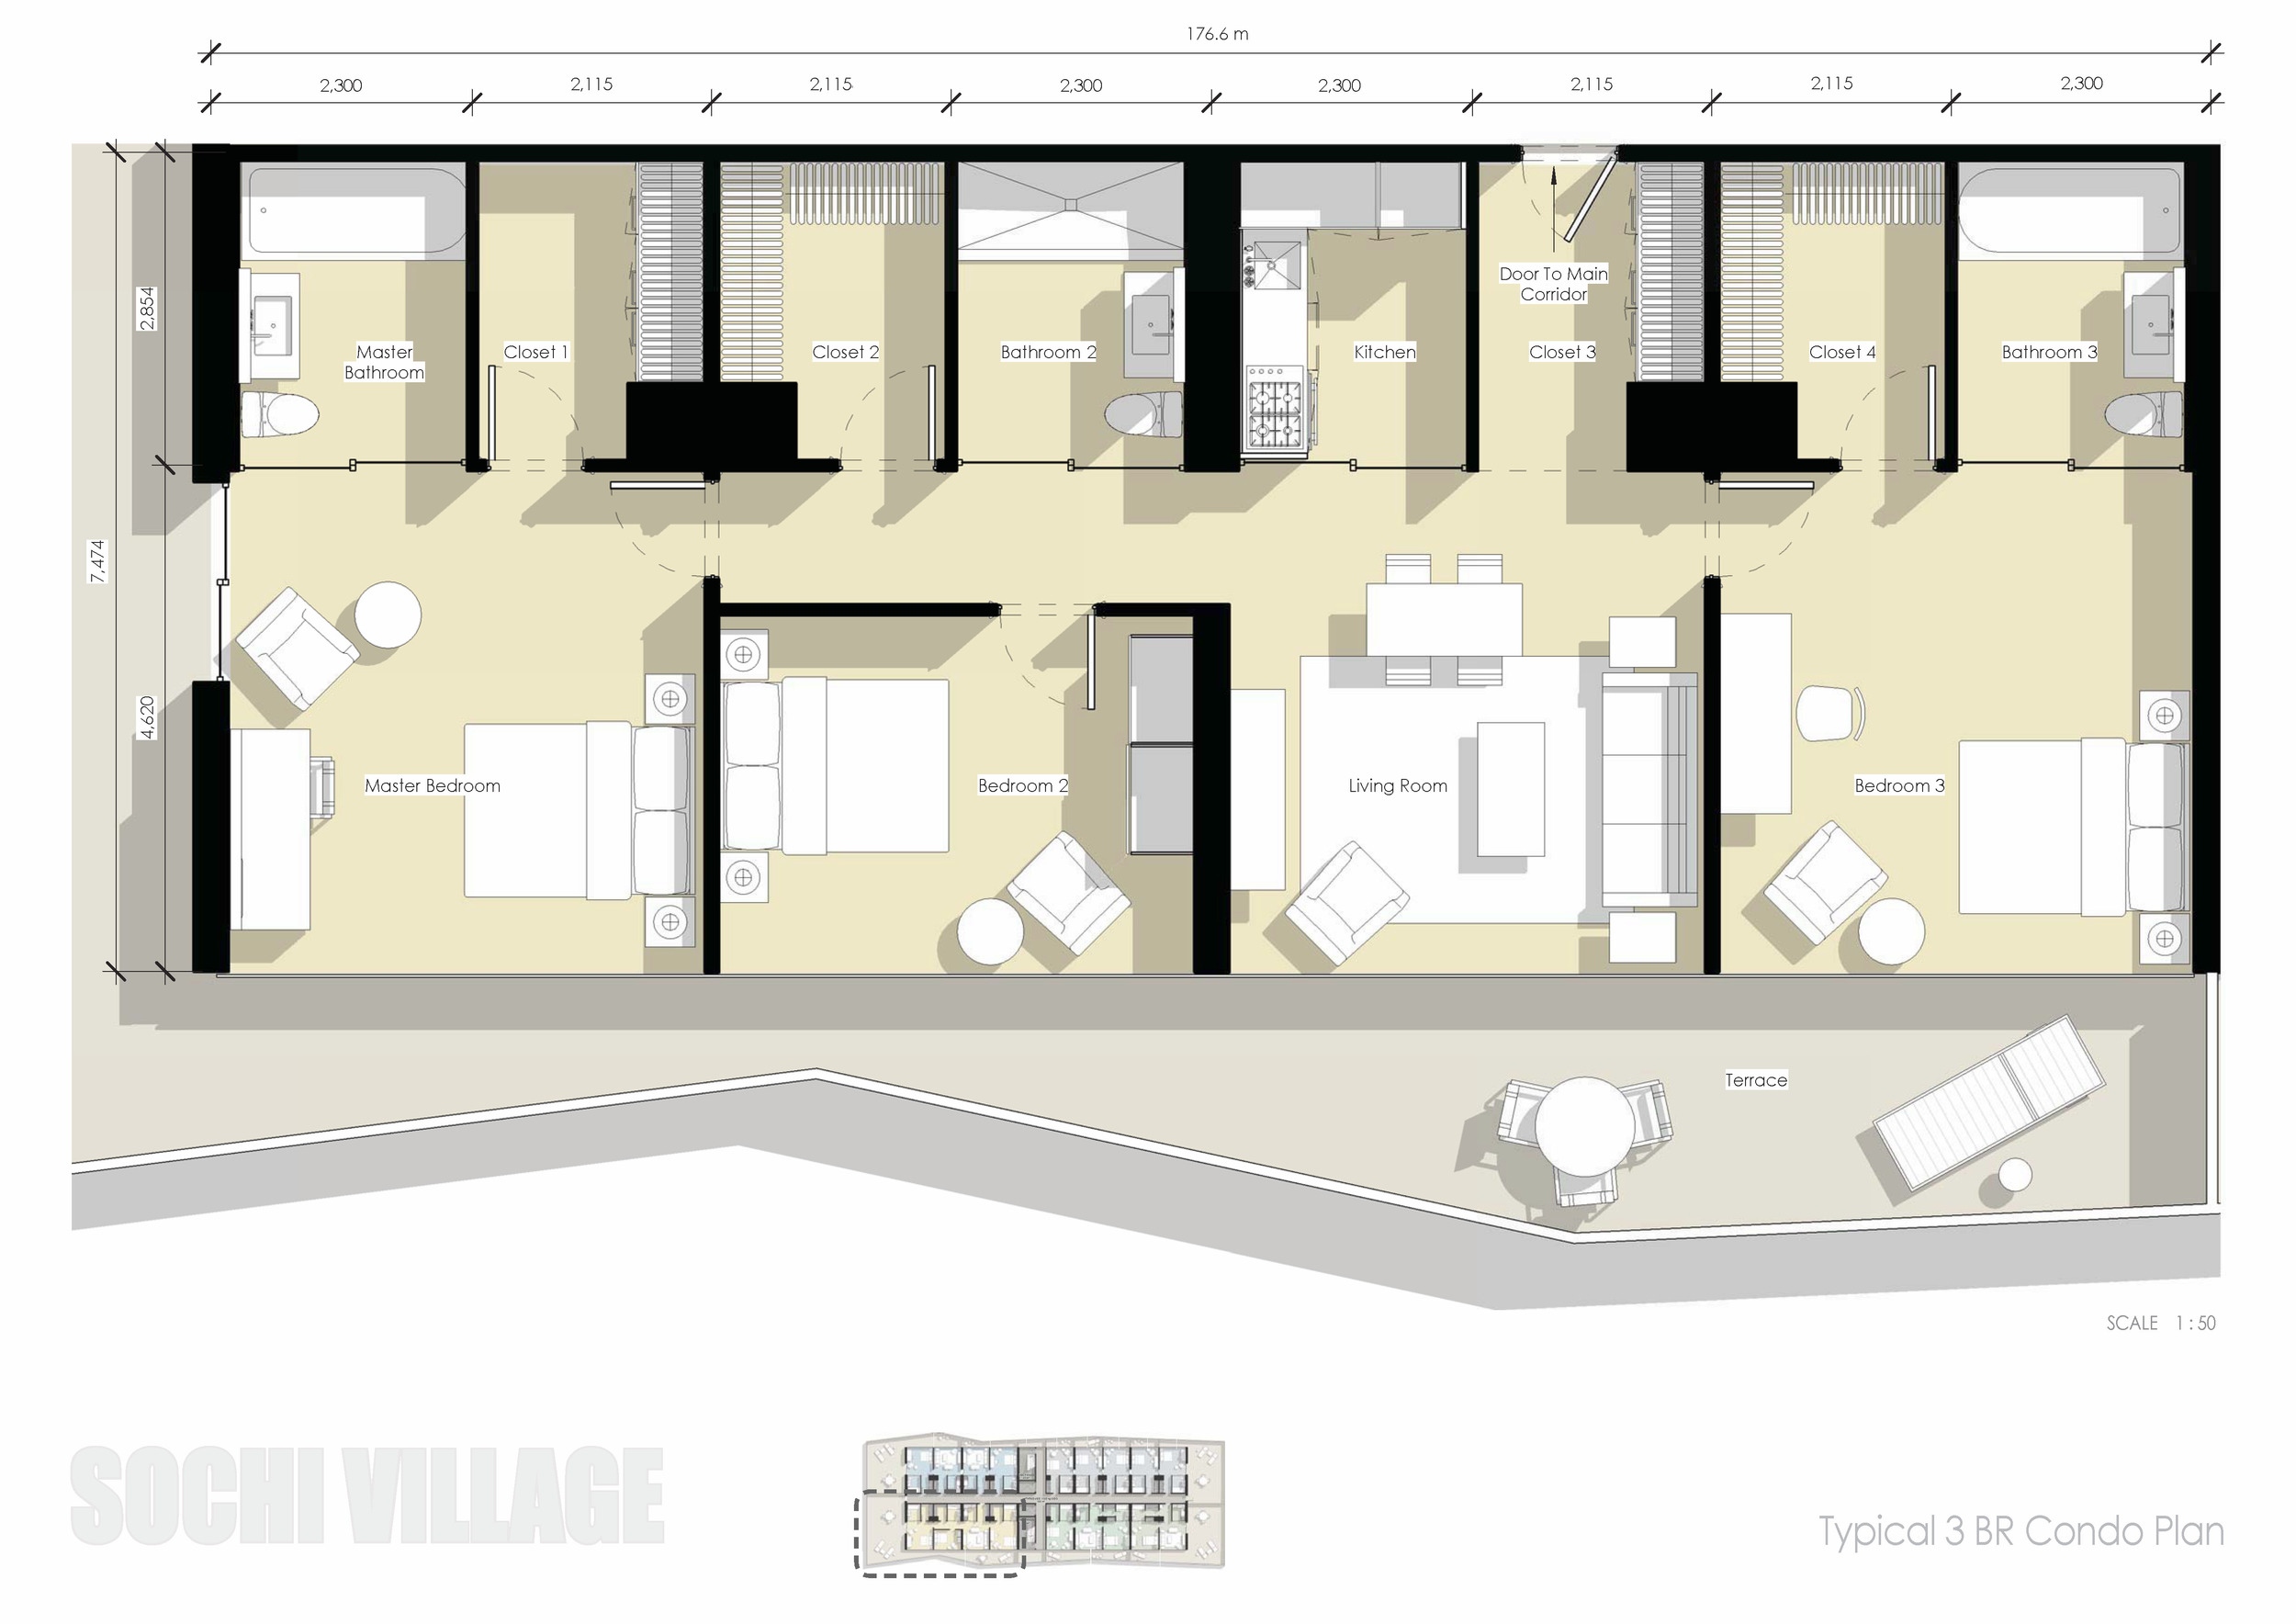 Sochi Olympic Village Typical 3 Bedroom Condo Plan